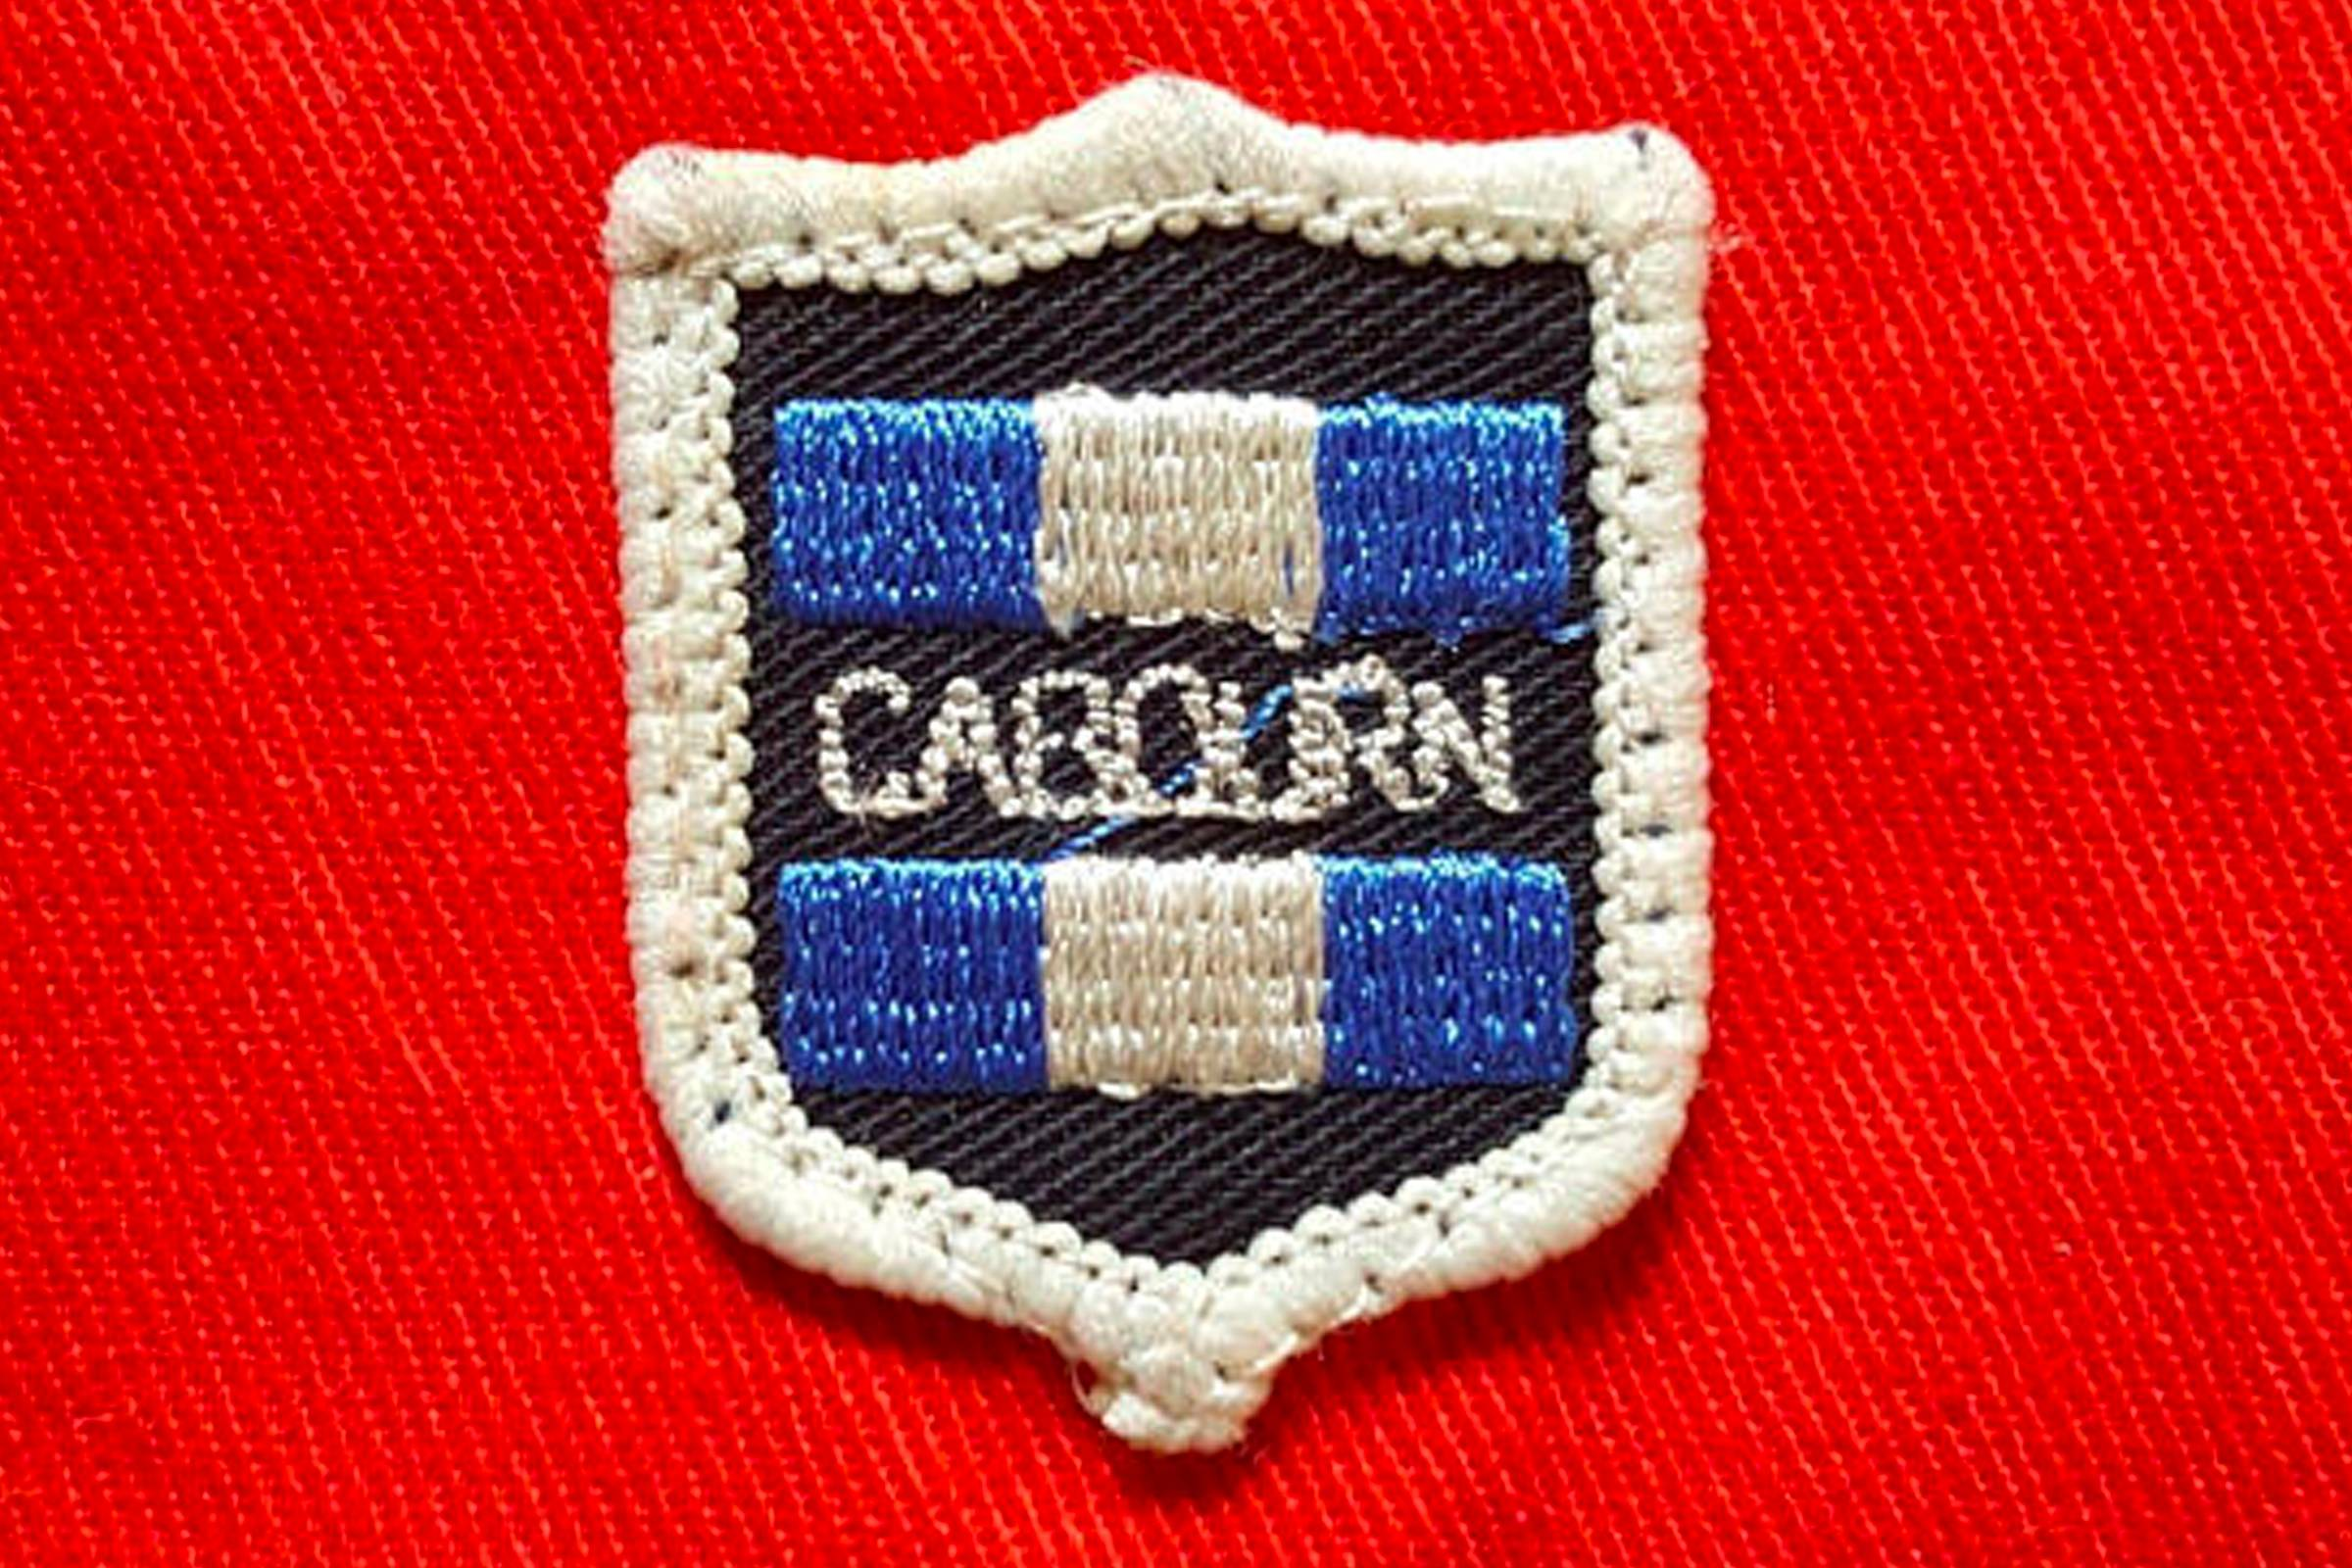 A Nigel Cabourn crest badge from sometime in the 1980s